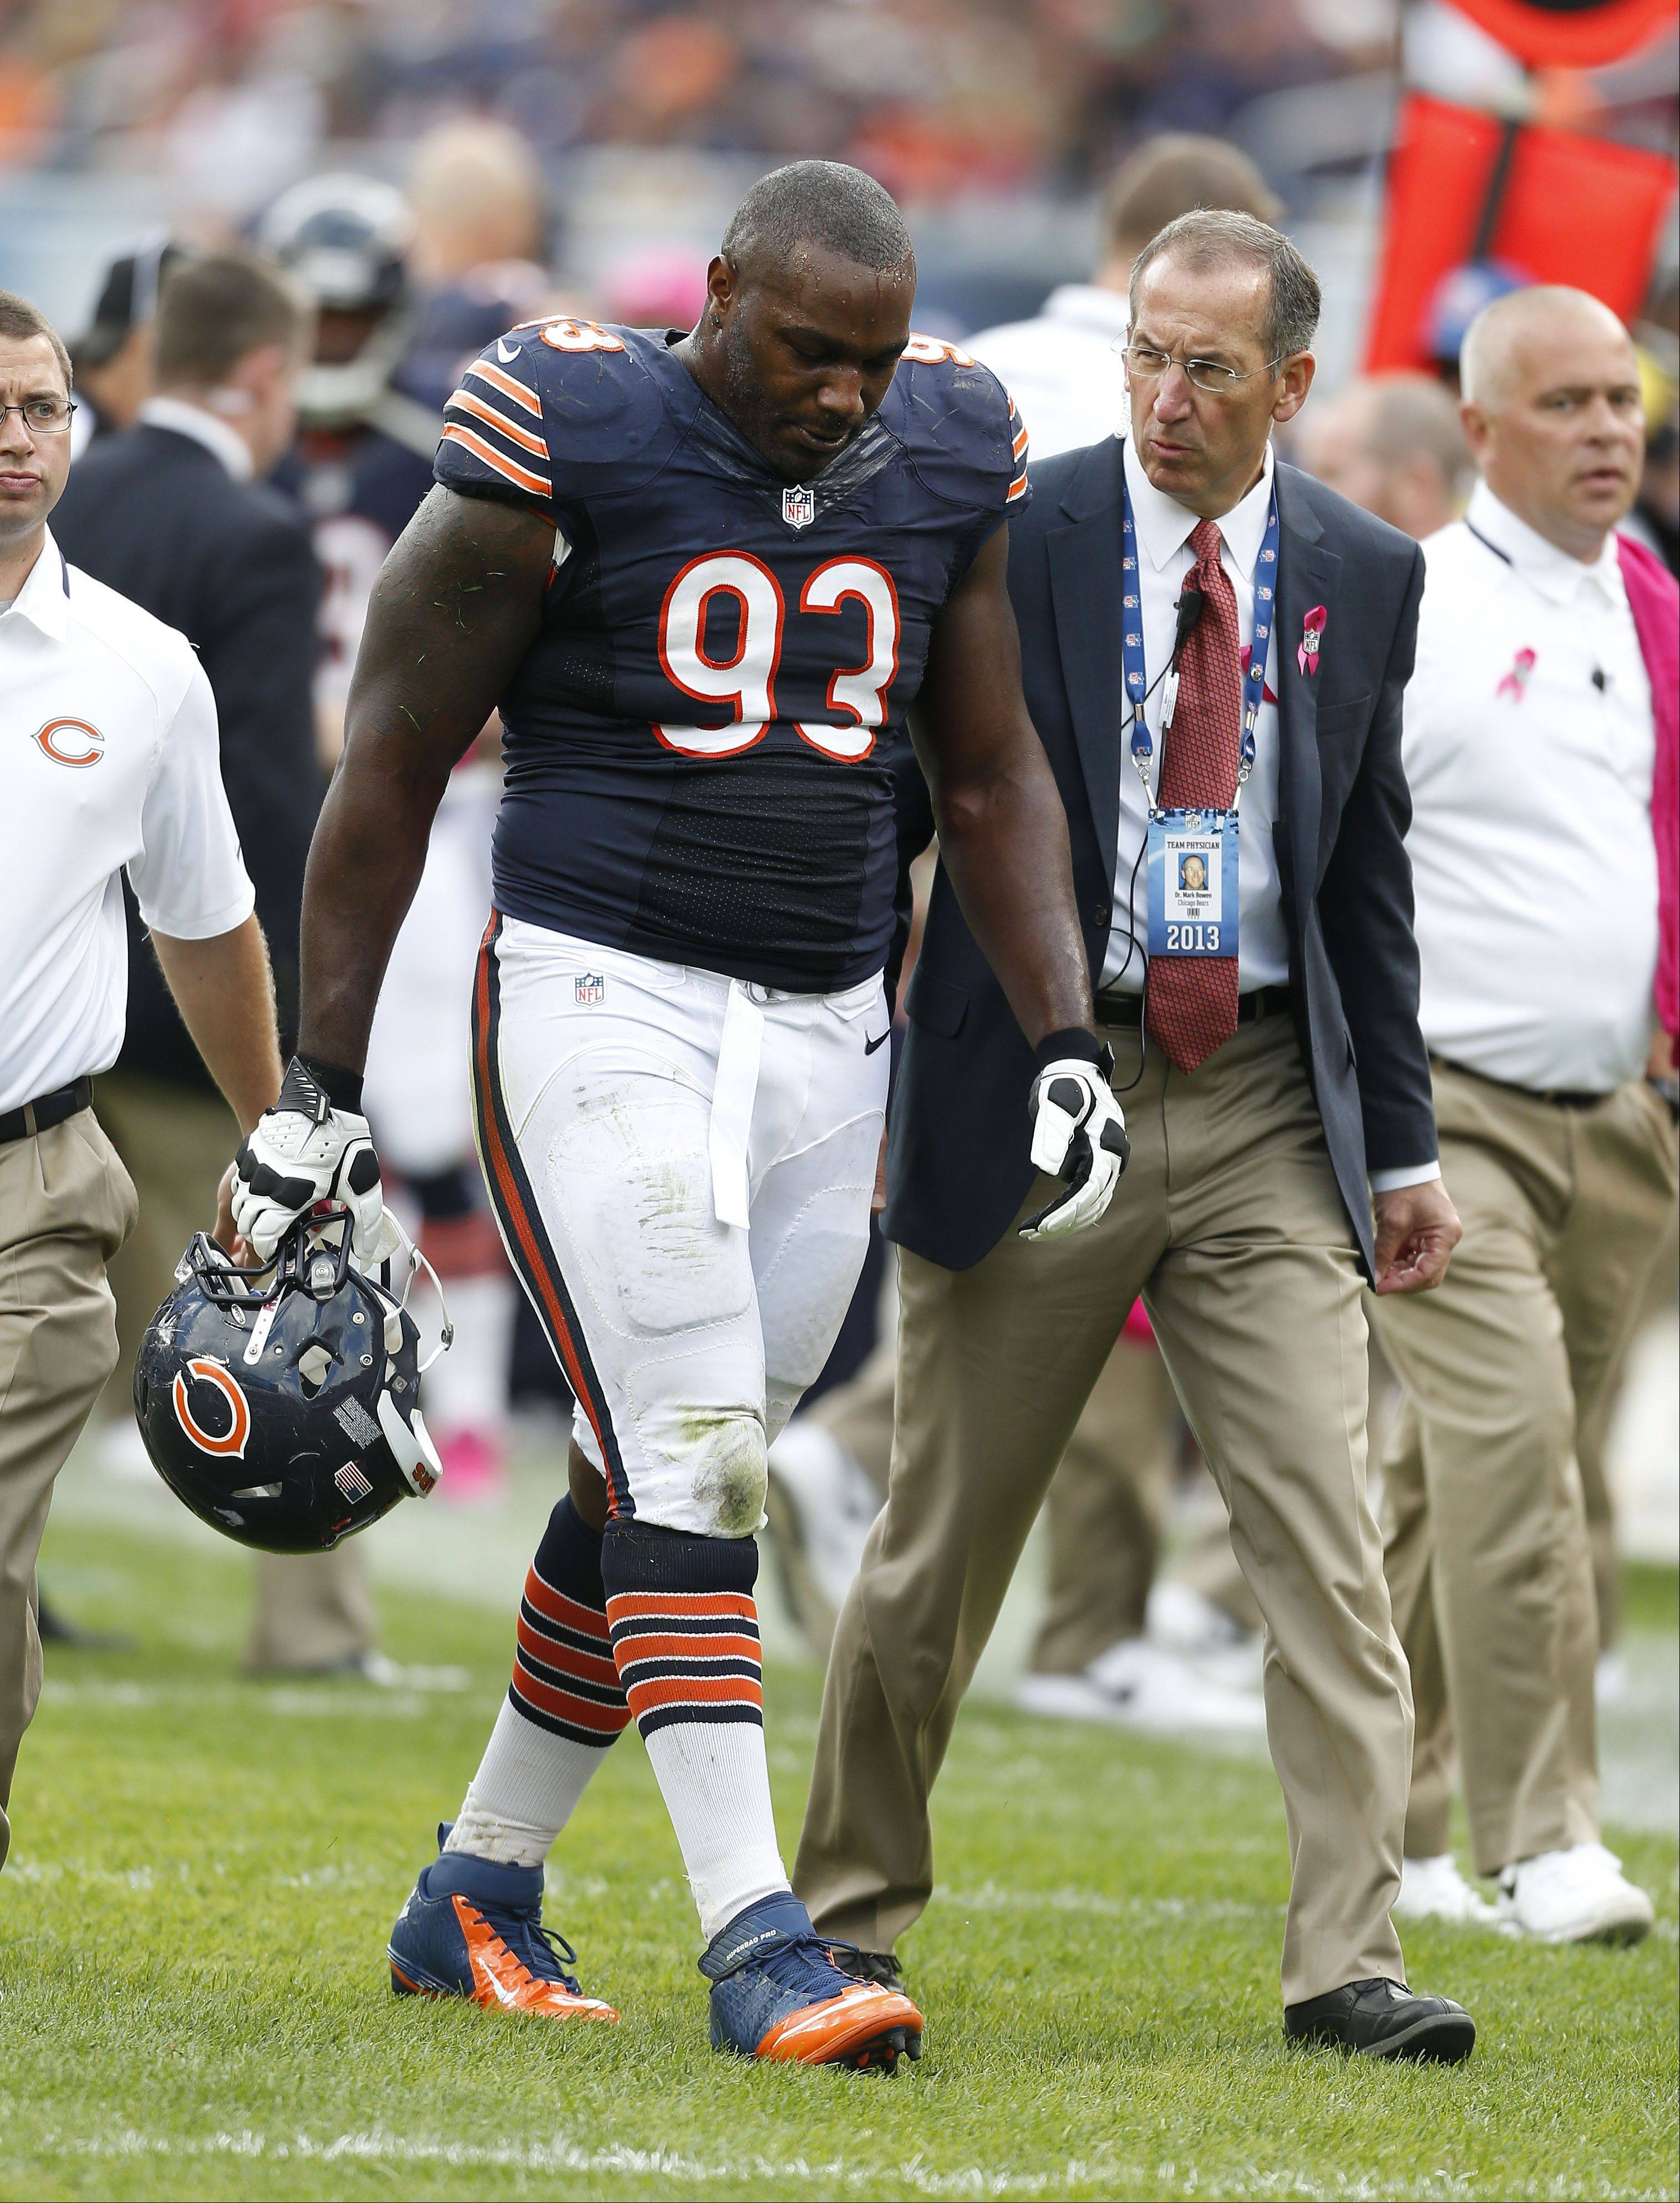 Bears defensive tackle Nate Collins leaves Sunday's game after a knee injury ended his season.